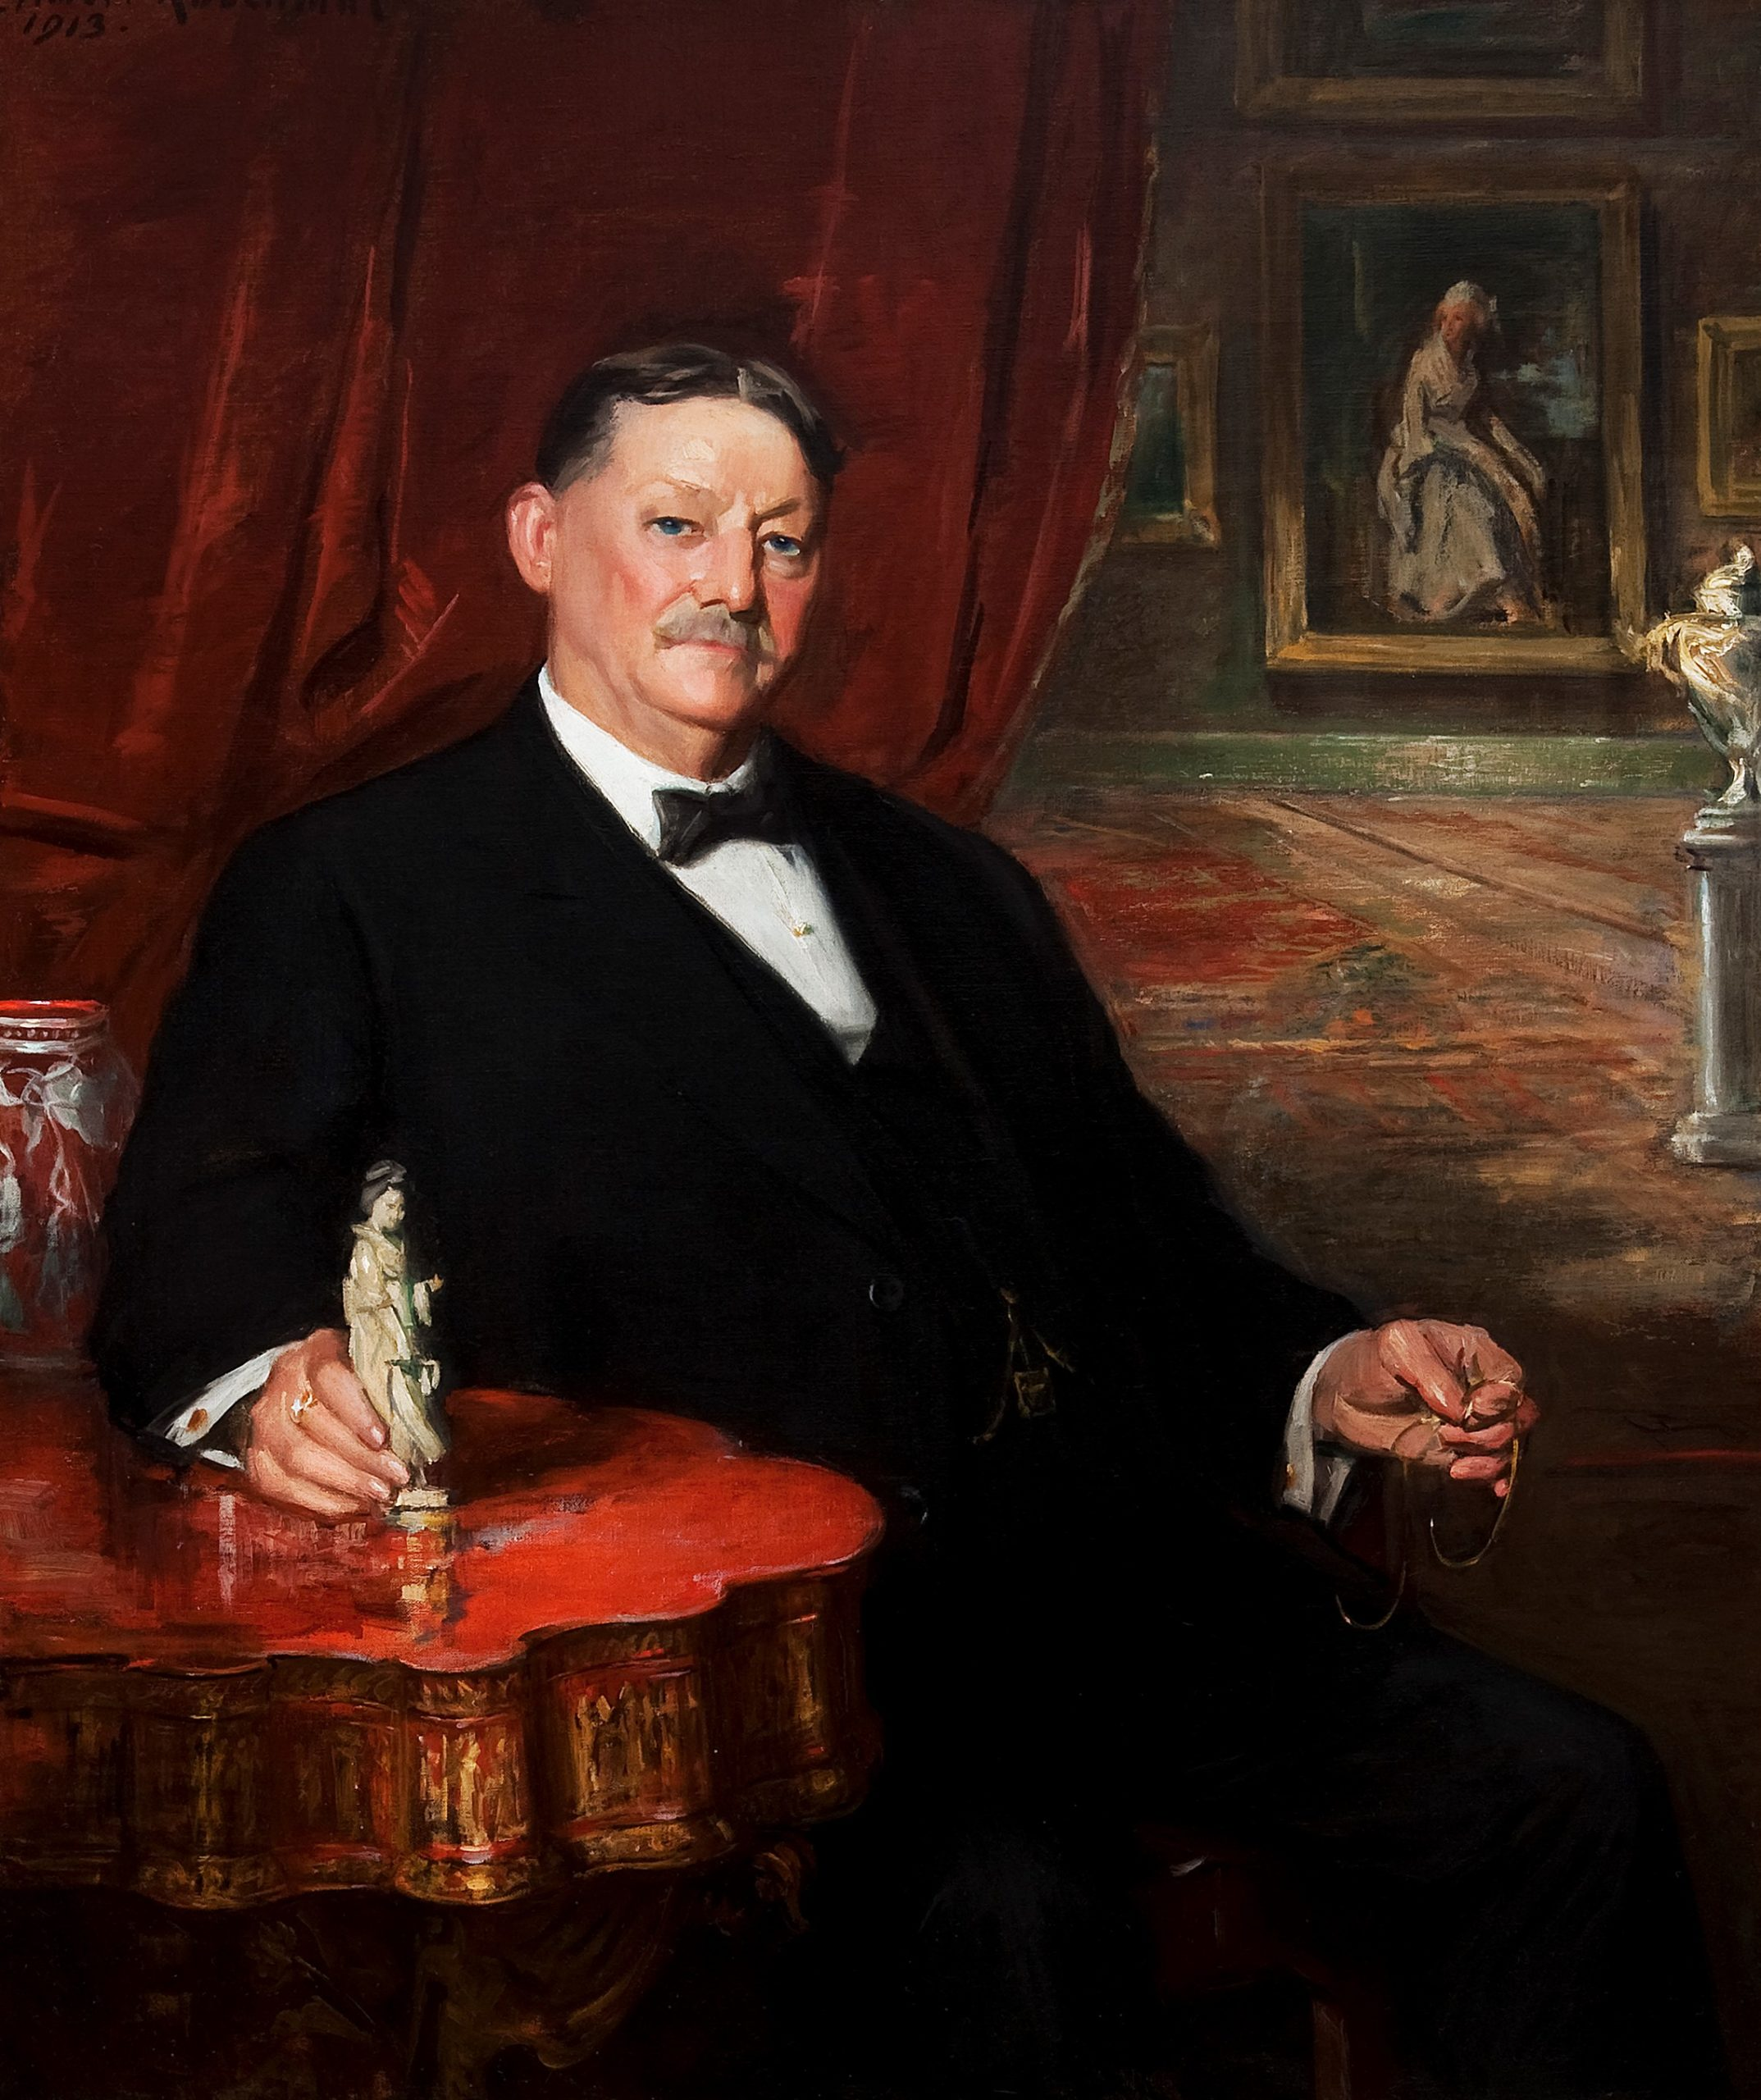 Charles Knox Smith, founder of Woodmere Art Museum, in a 1913 portrait by Albert Rosenthal. ( Image courtesy of Woodmere Art Museum: Bequest of Charles Knox Smith)